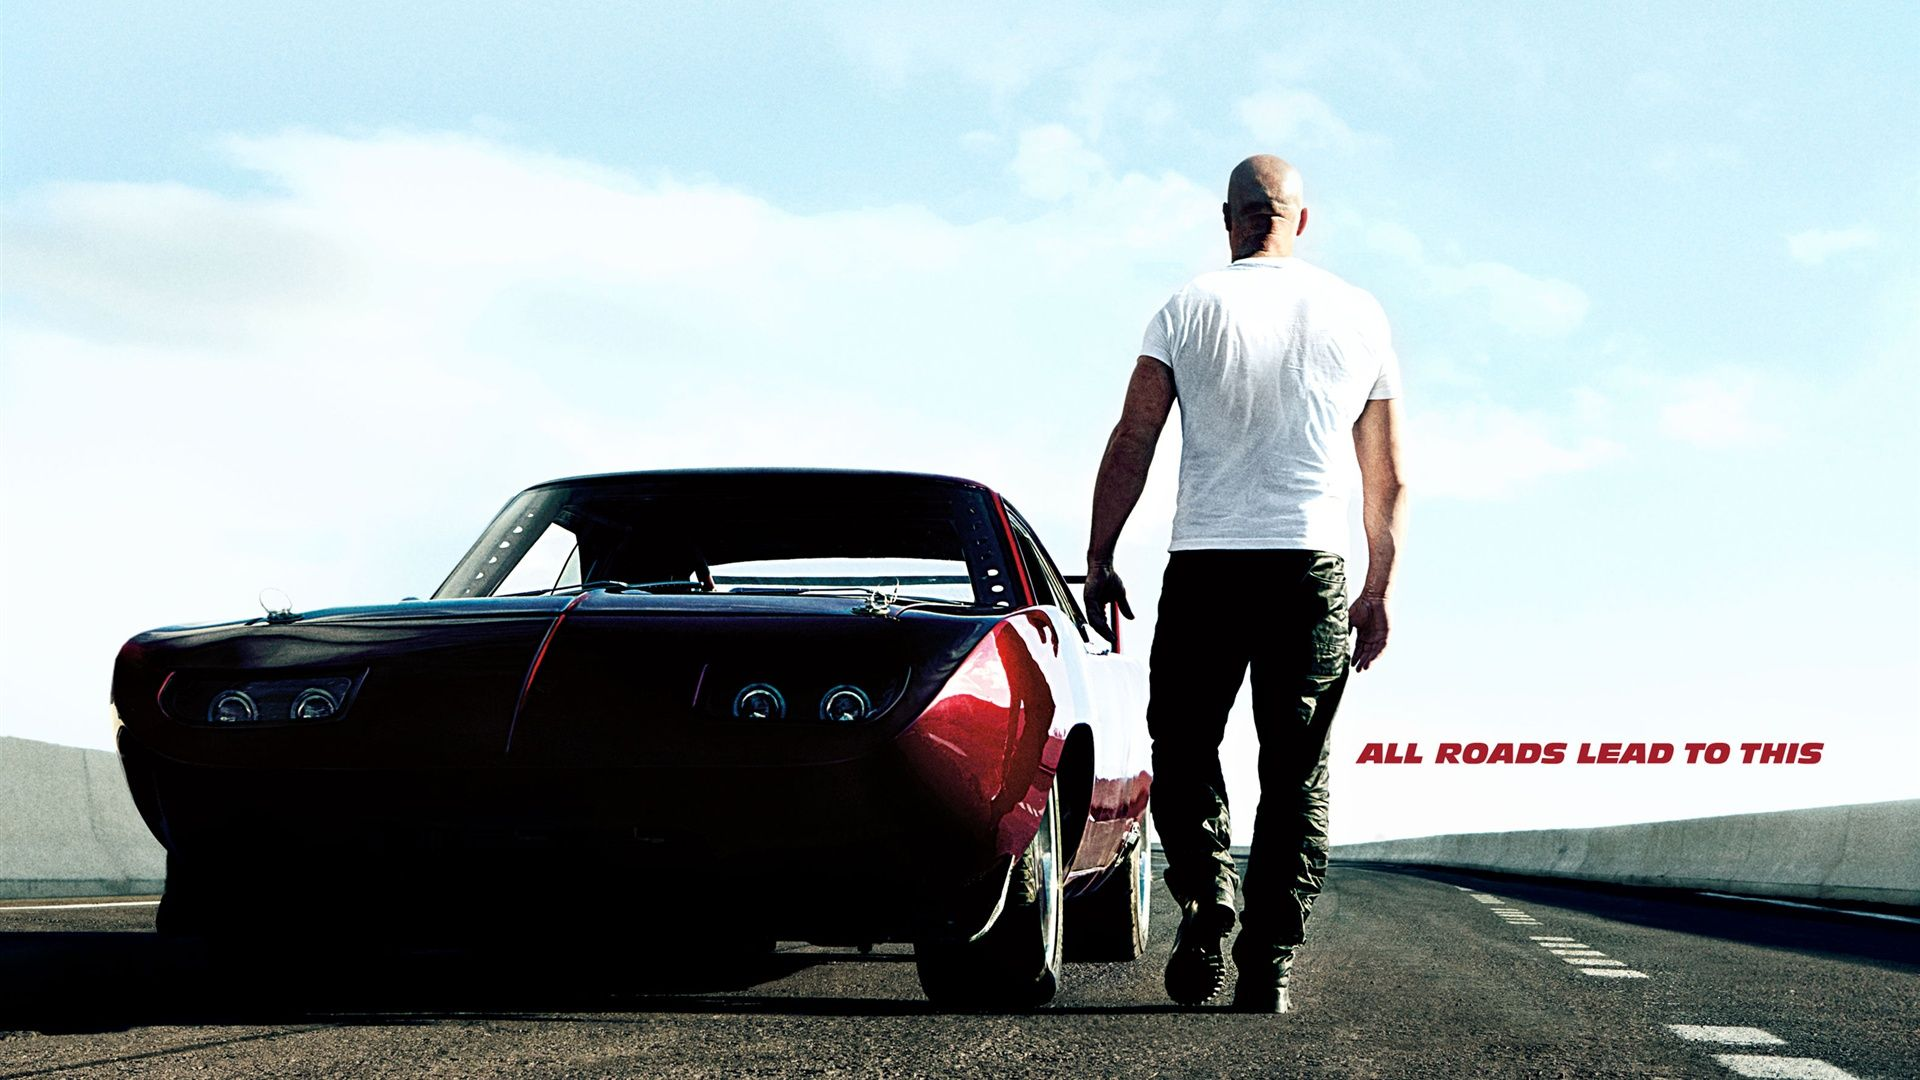 Fast And Furious 7 Hd Wallpaper Download Free Desktop Wallpaper Fast And Furious7 Download Full Movie